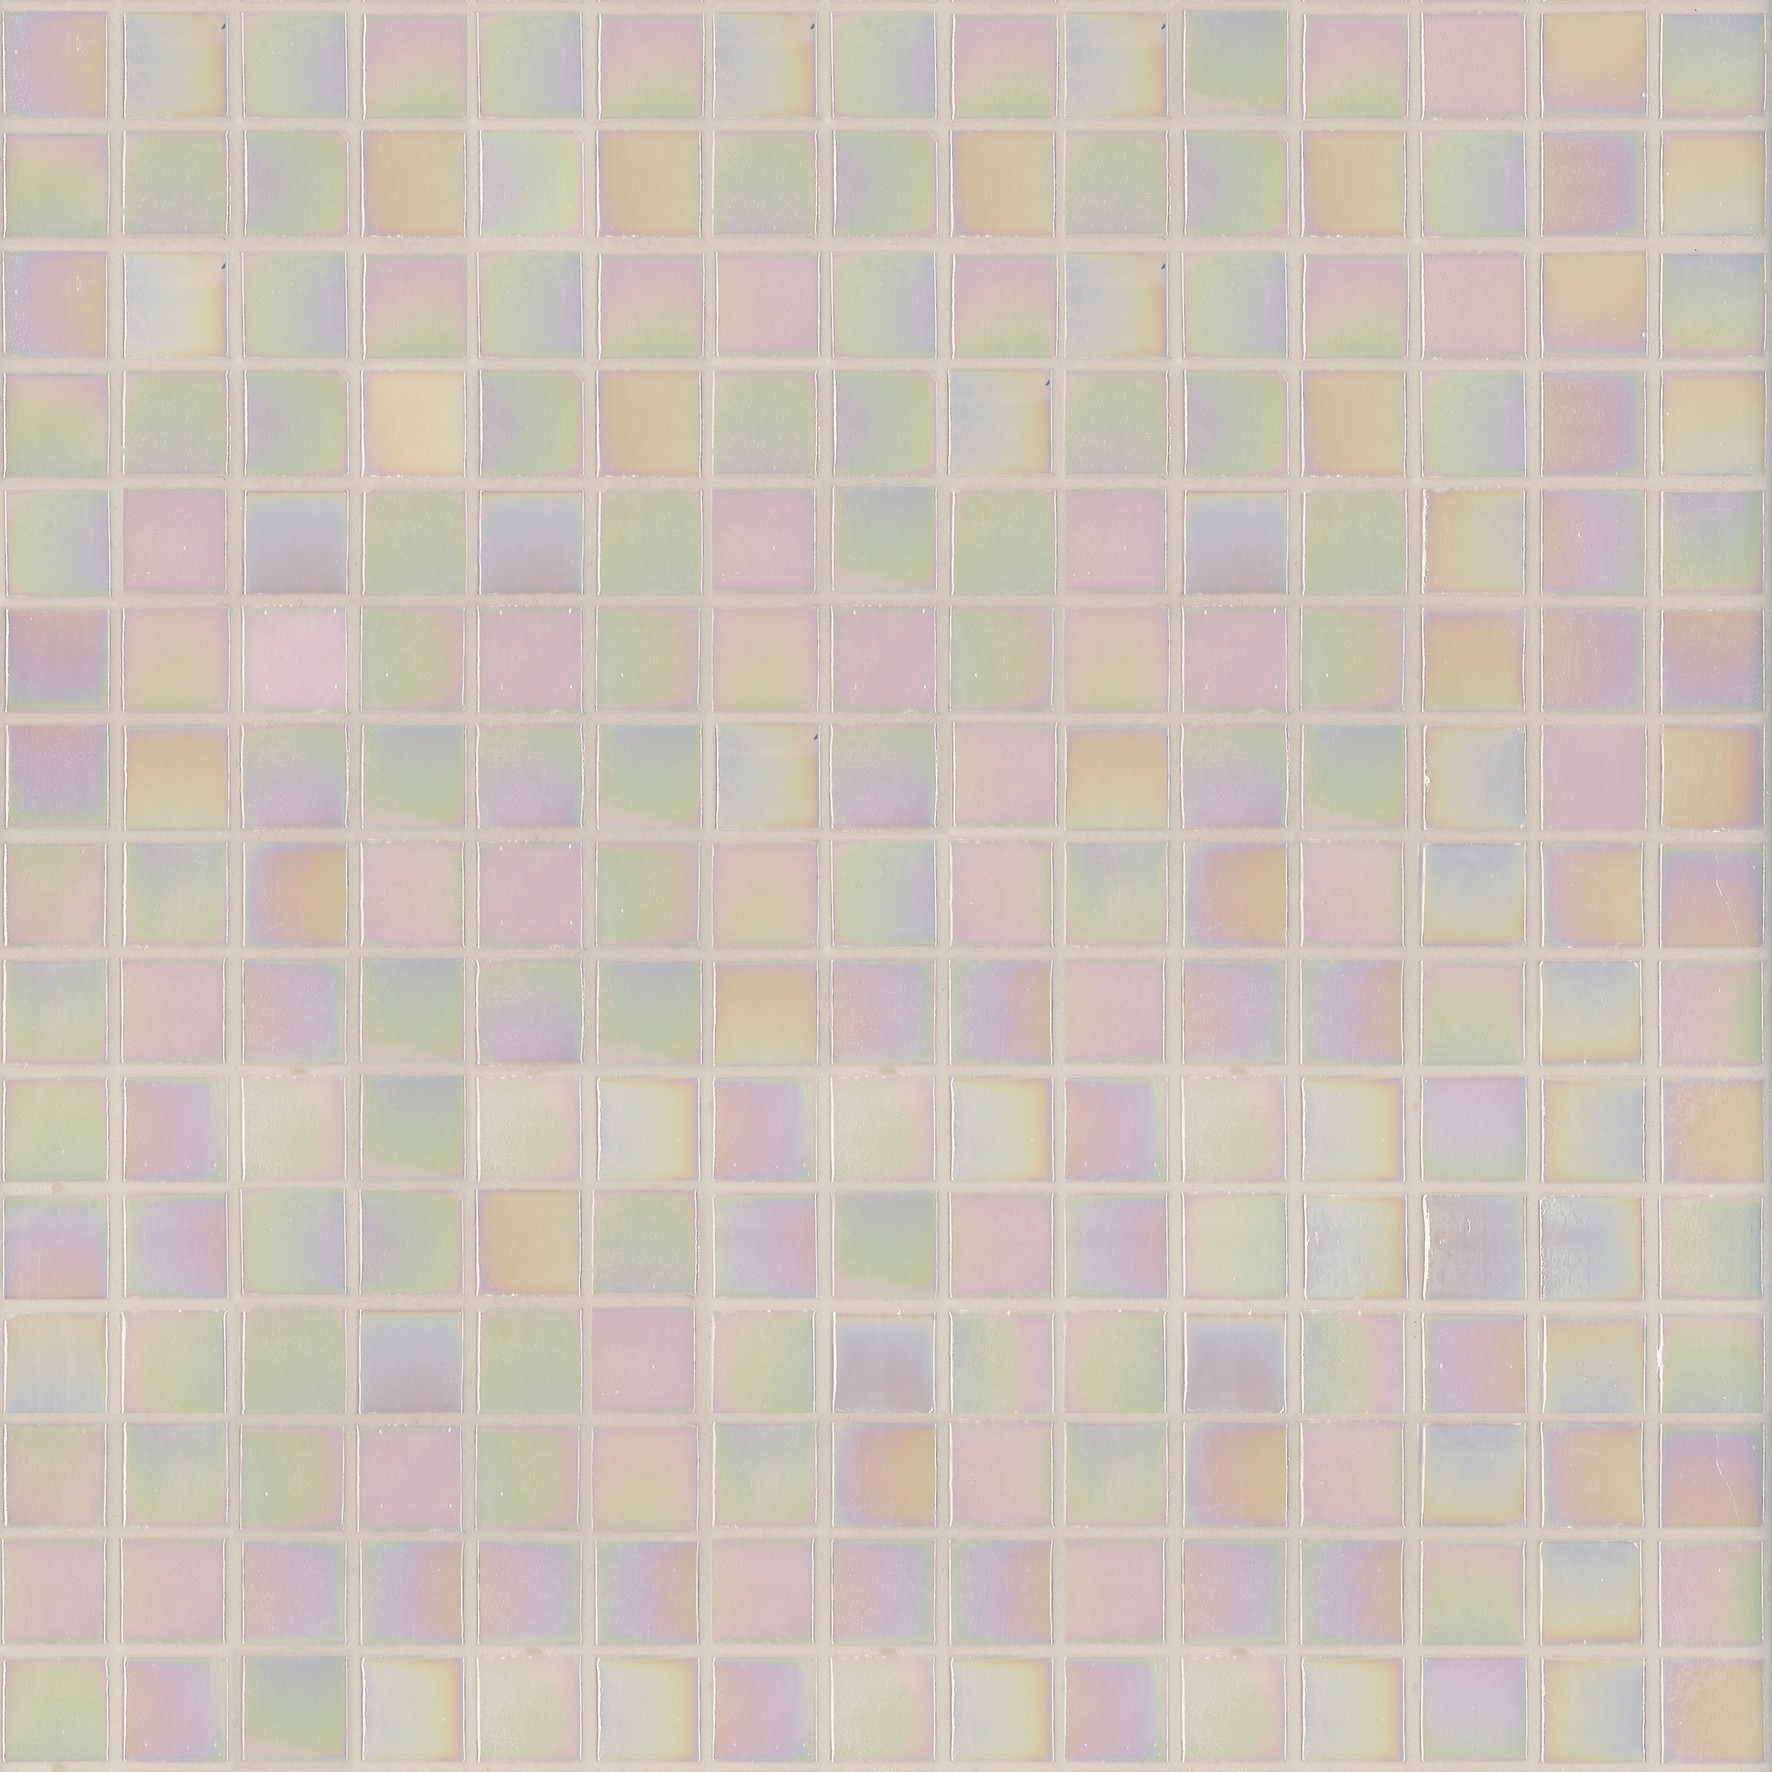 "Bisazza Gloss GL 03 Glass Mosaic Tile 20mm - 3/4"", 1 sheet"